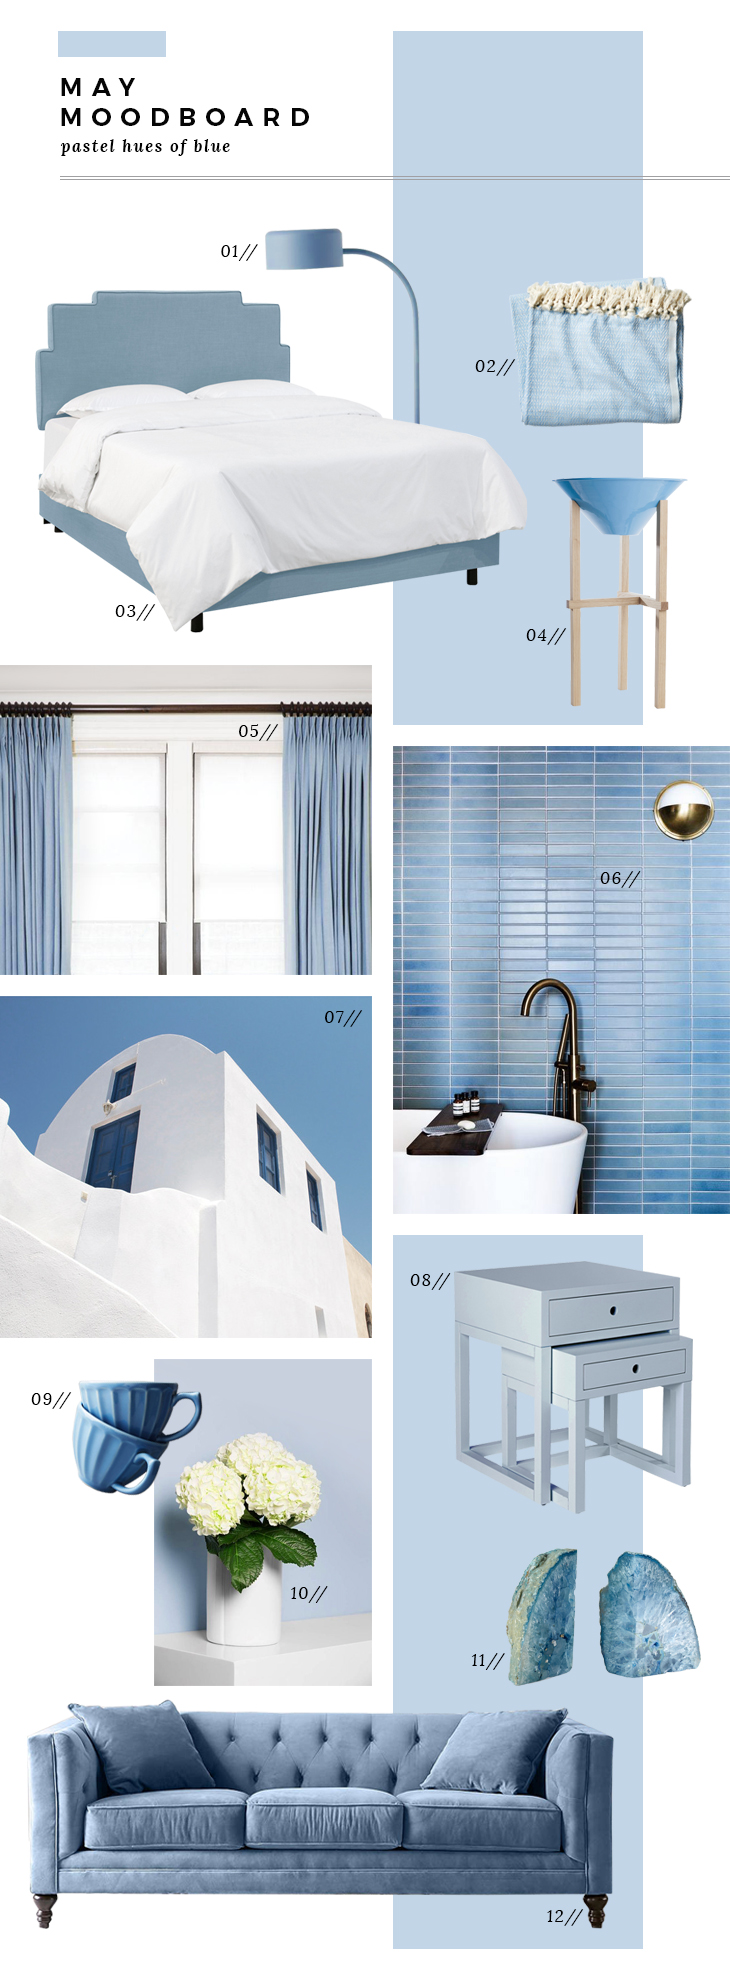 May Mood Board - Summer Blues